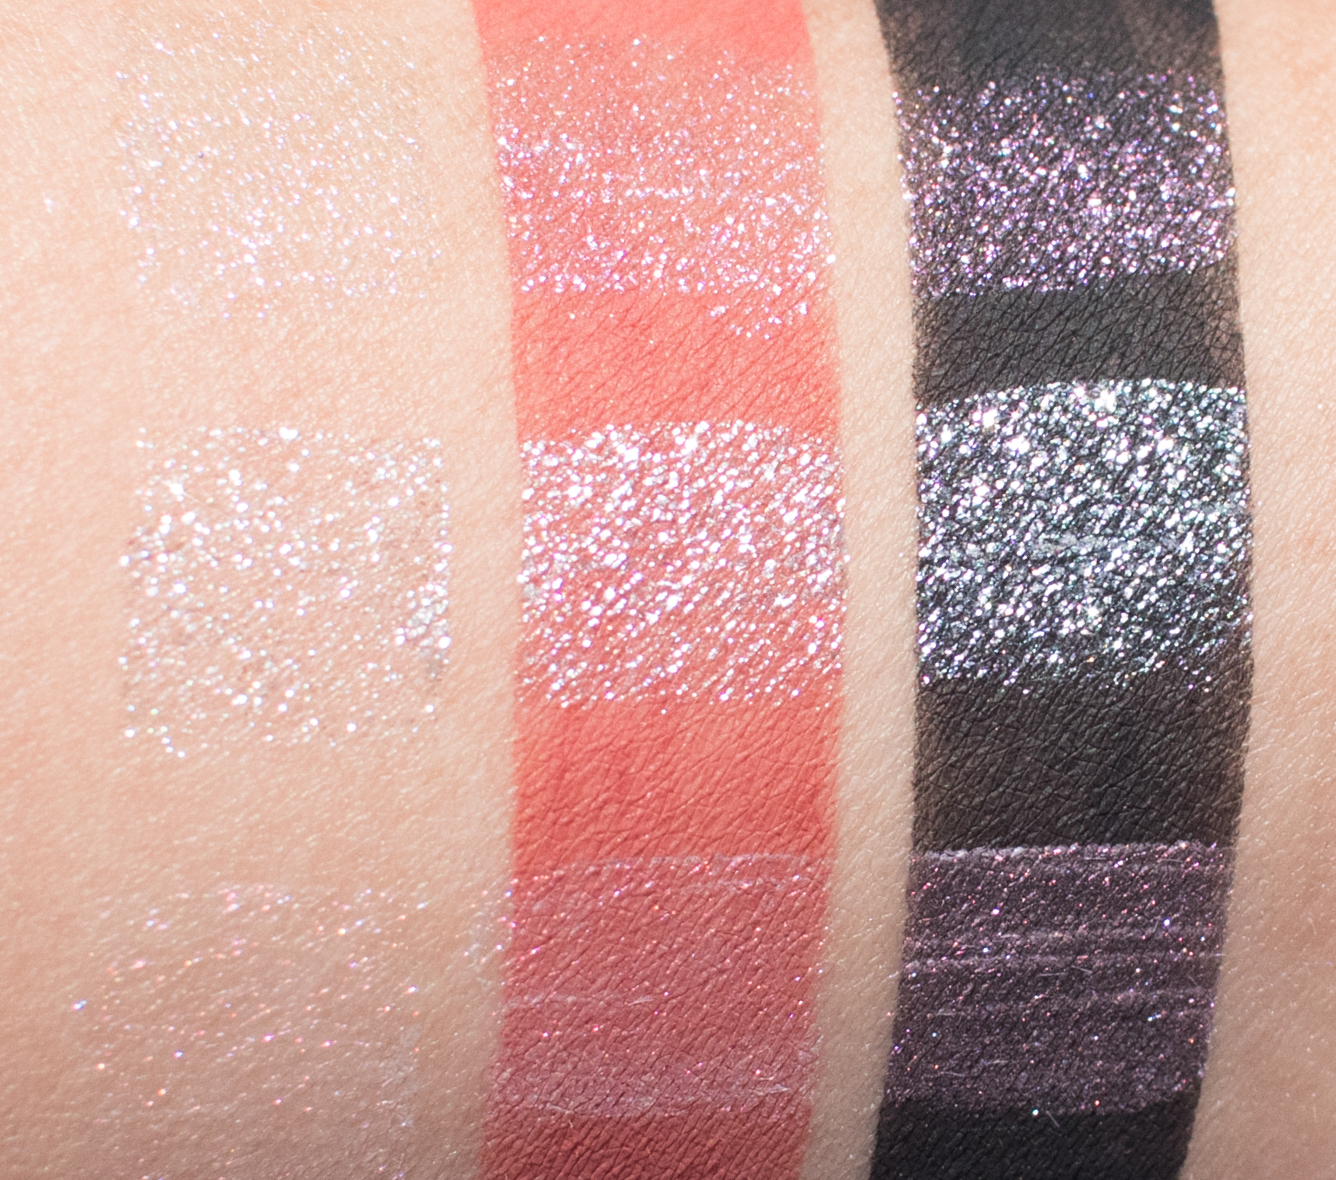 Darling Girl Glitter Potion Lip Toppers in Charmed, Divine, and Ritual arm swatches